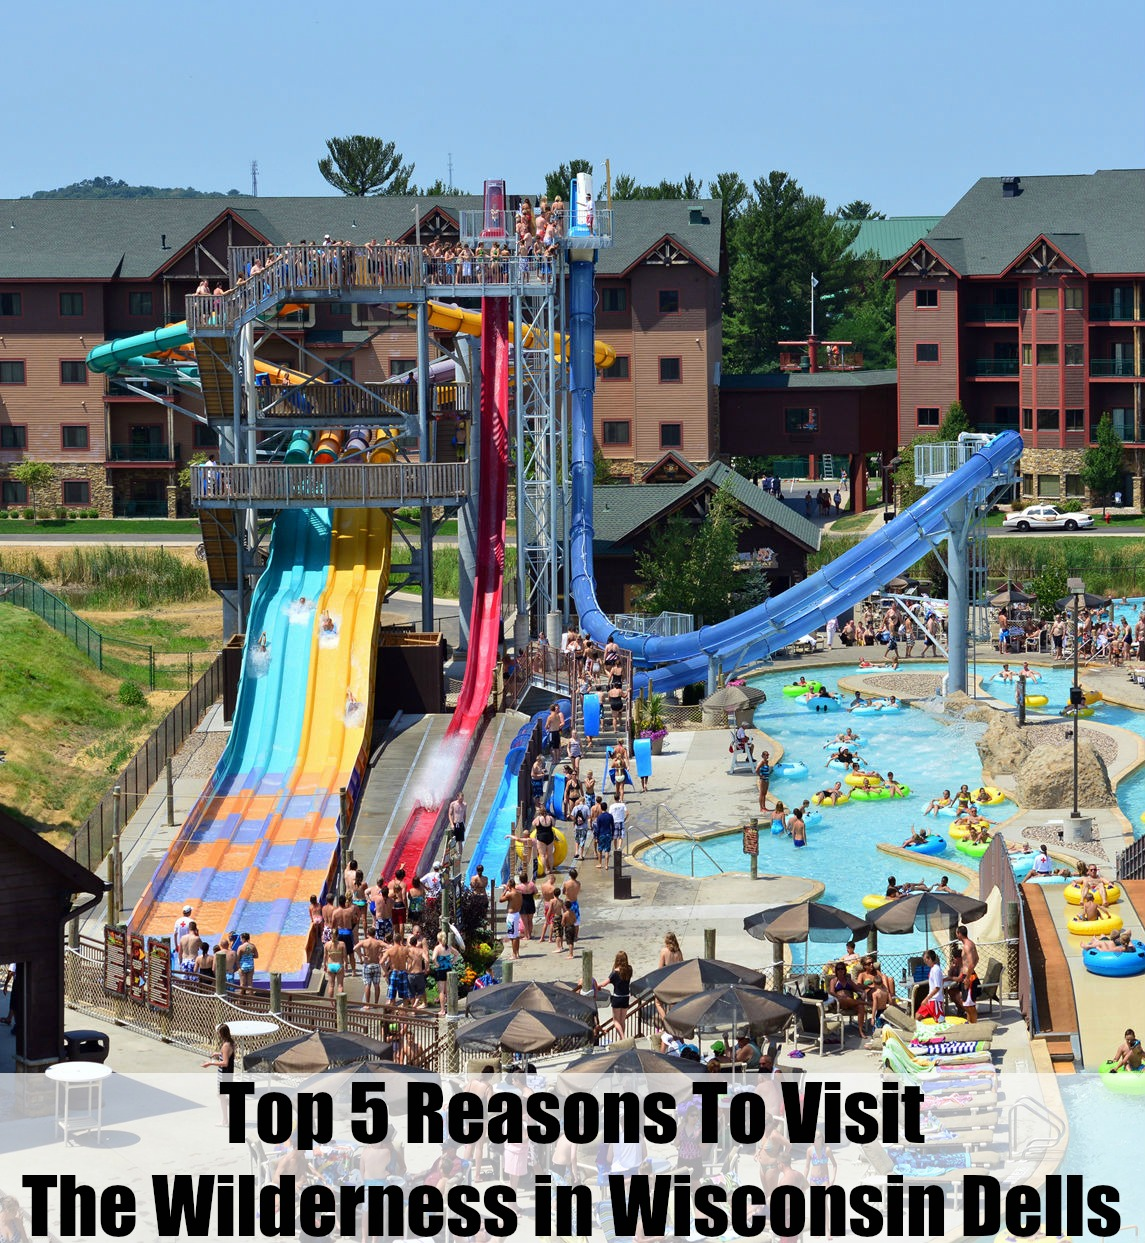 Best Waterpark Hotels In Wisconsin Dells